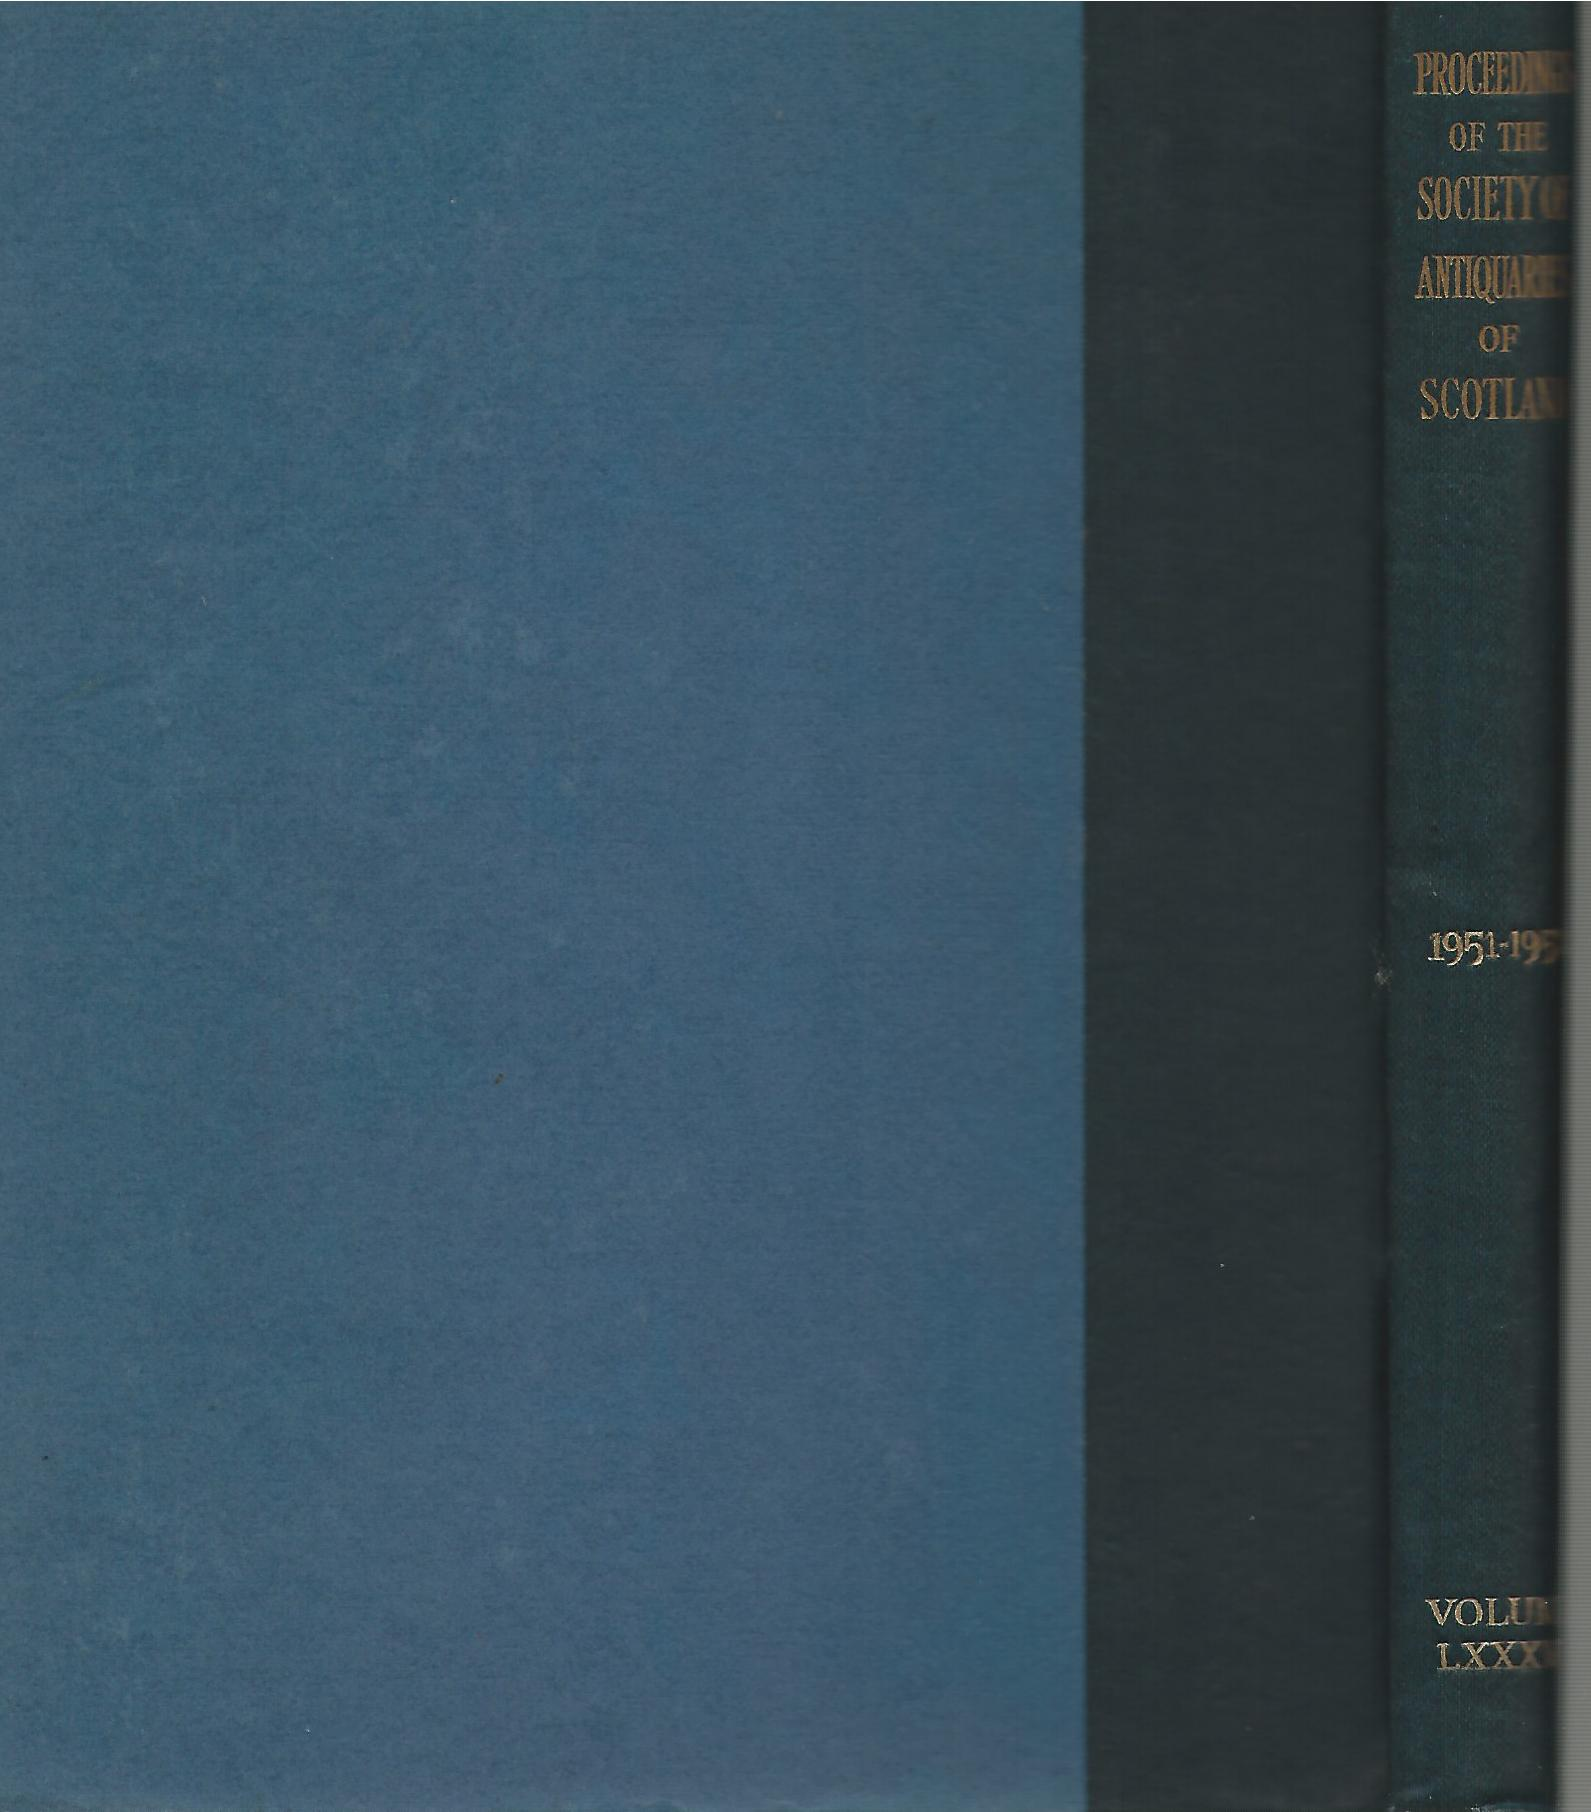 Image for Proceedings of The Society of Antiquaries of Scotland Volume LXXXVI 1951-1952